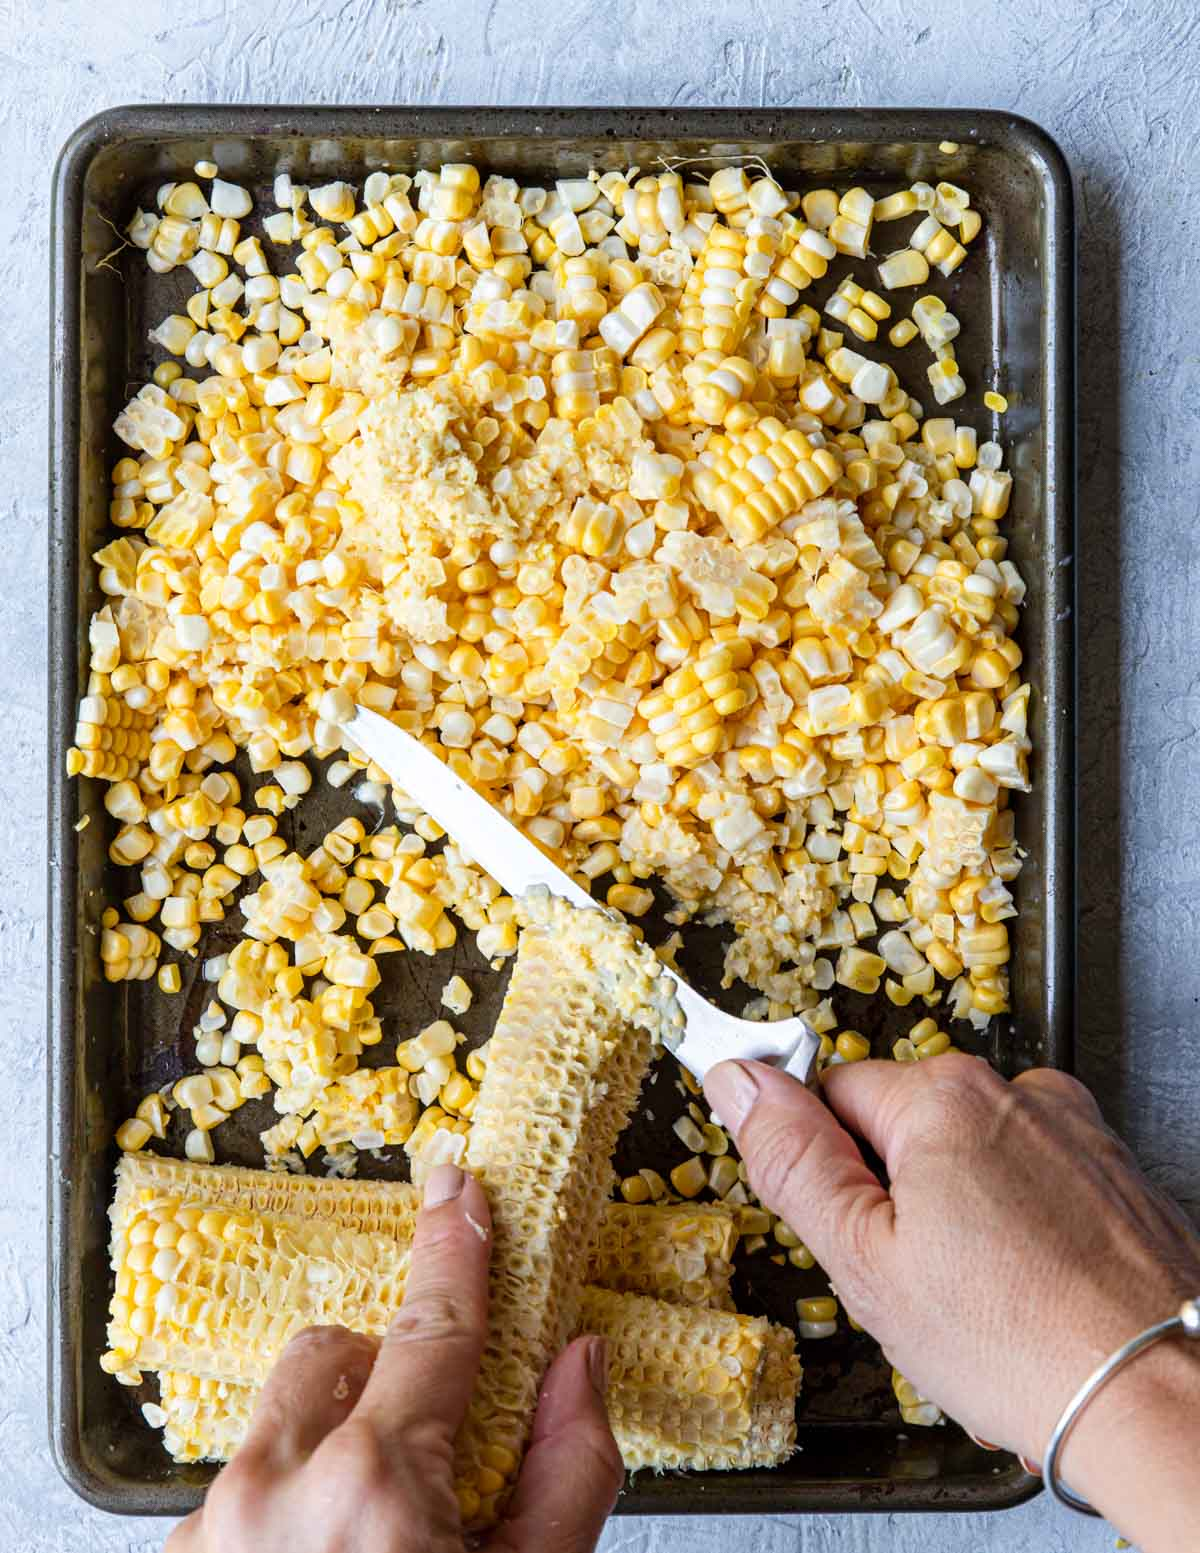 Removing corn from the cob and scraping the pulp and milk